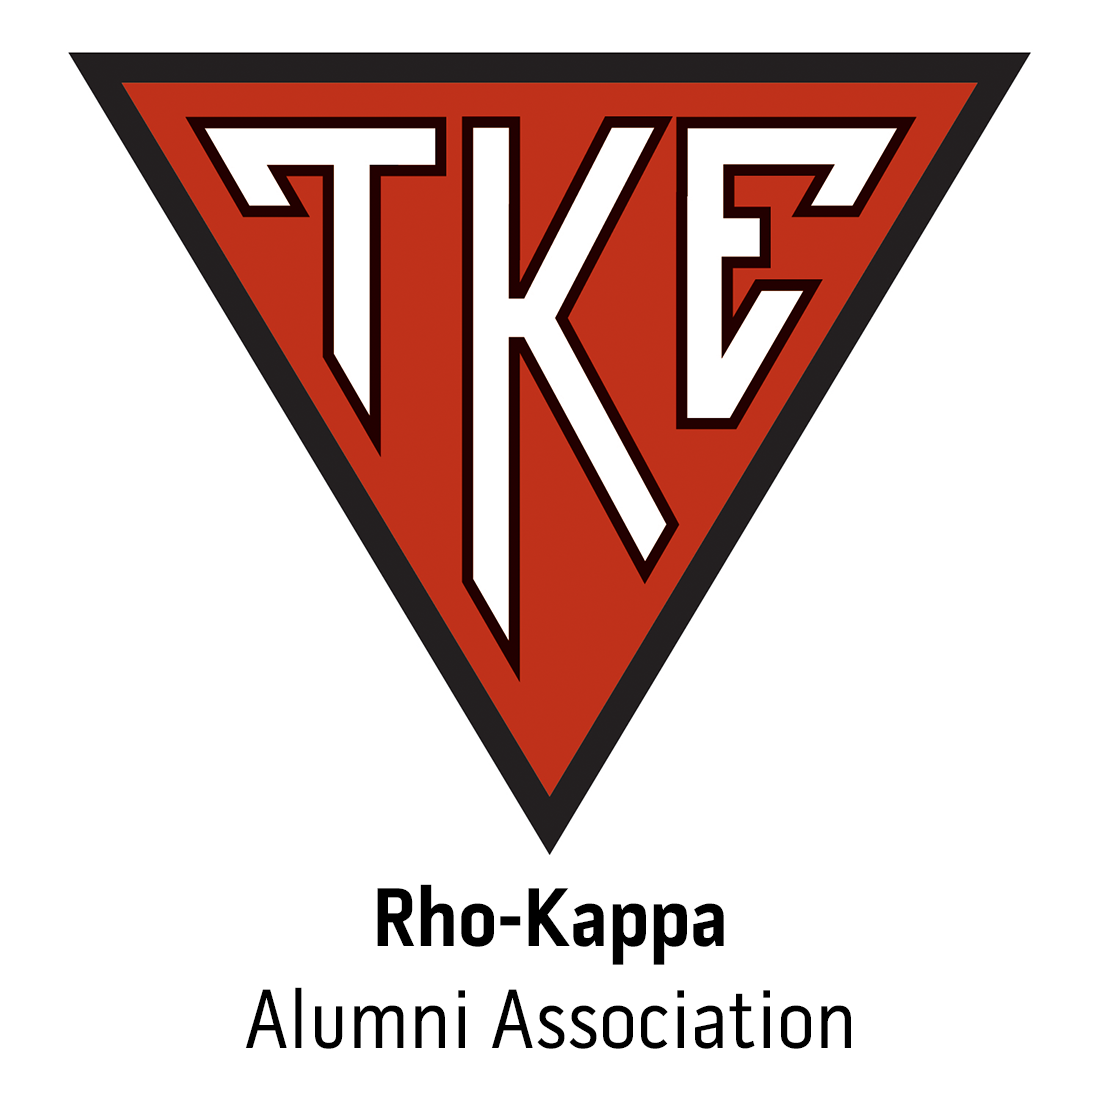 Rho-Kappa Alumni Association Alumni at Longwood University